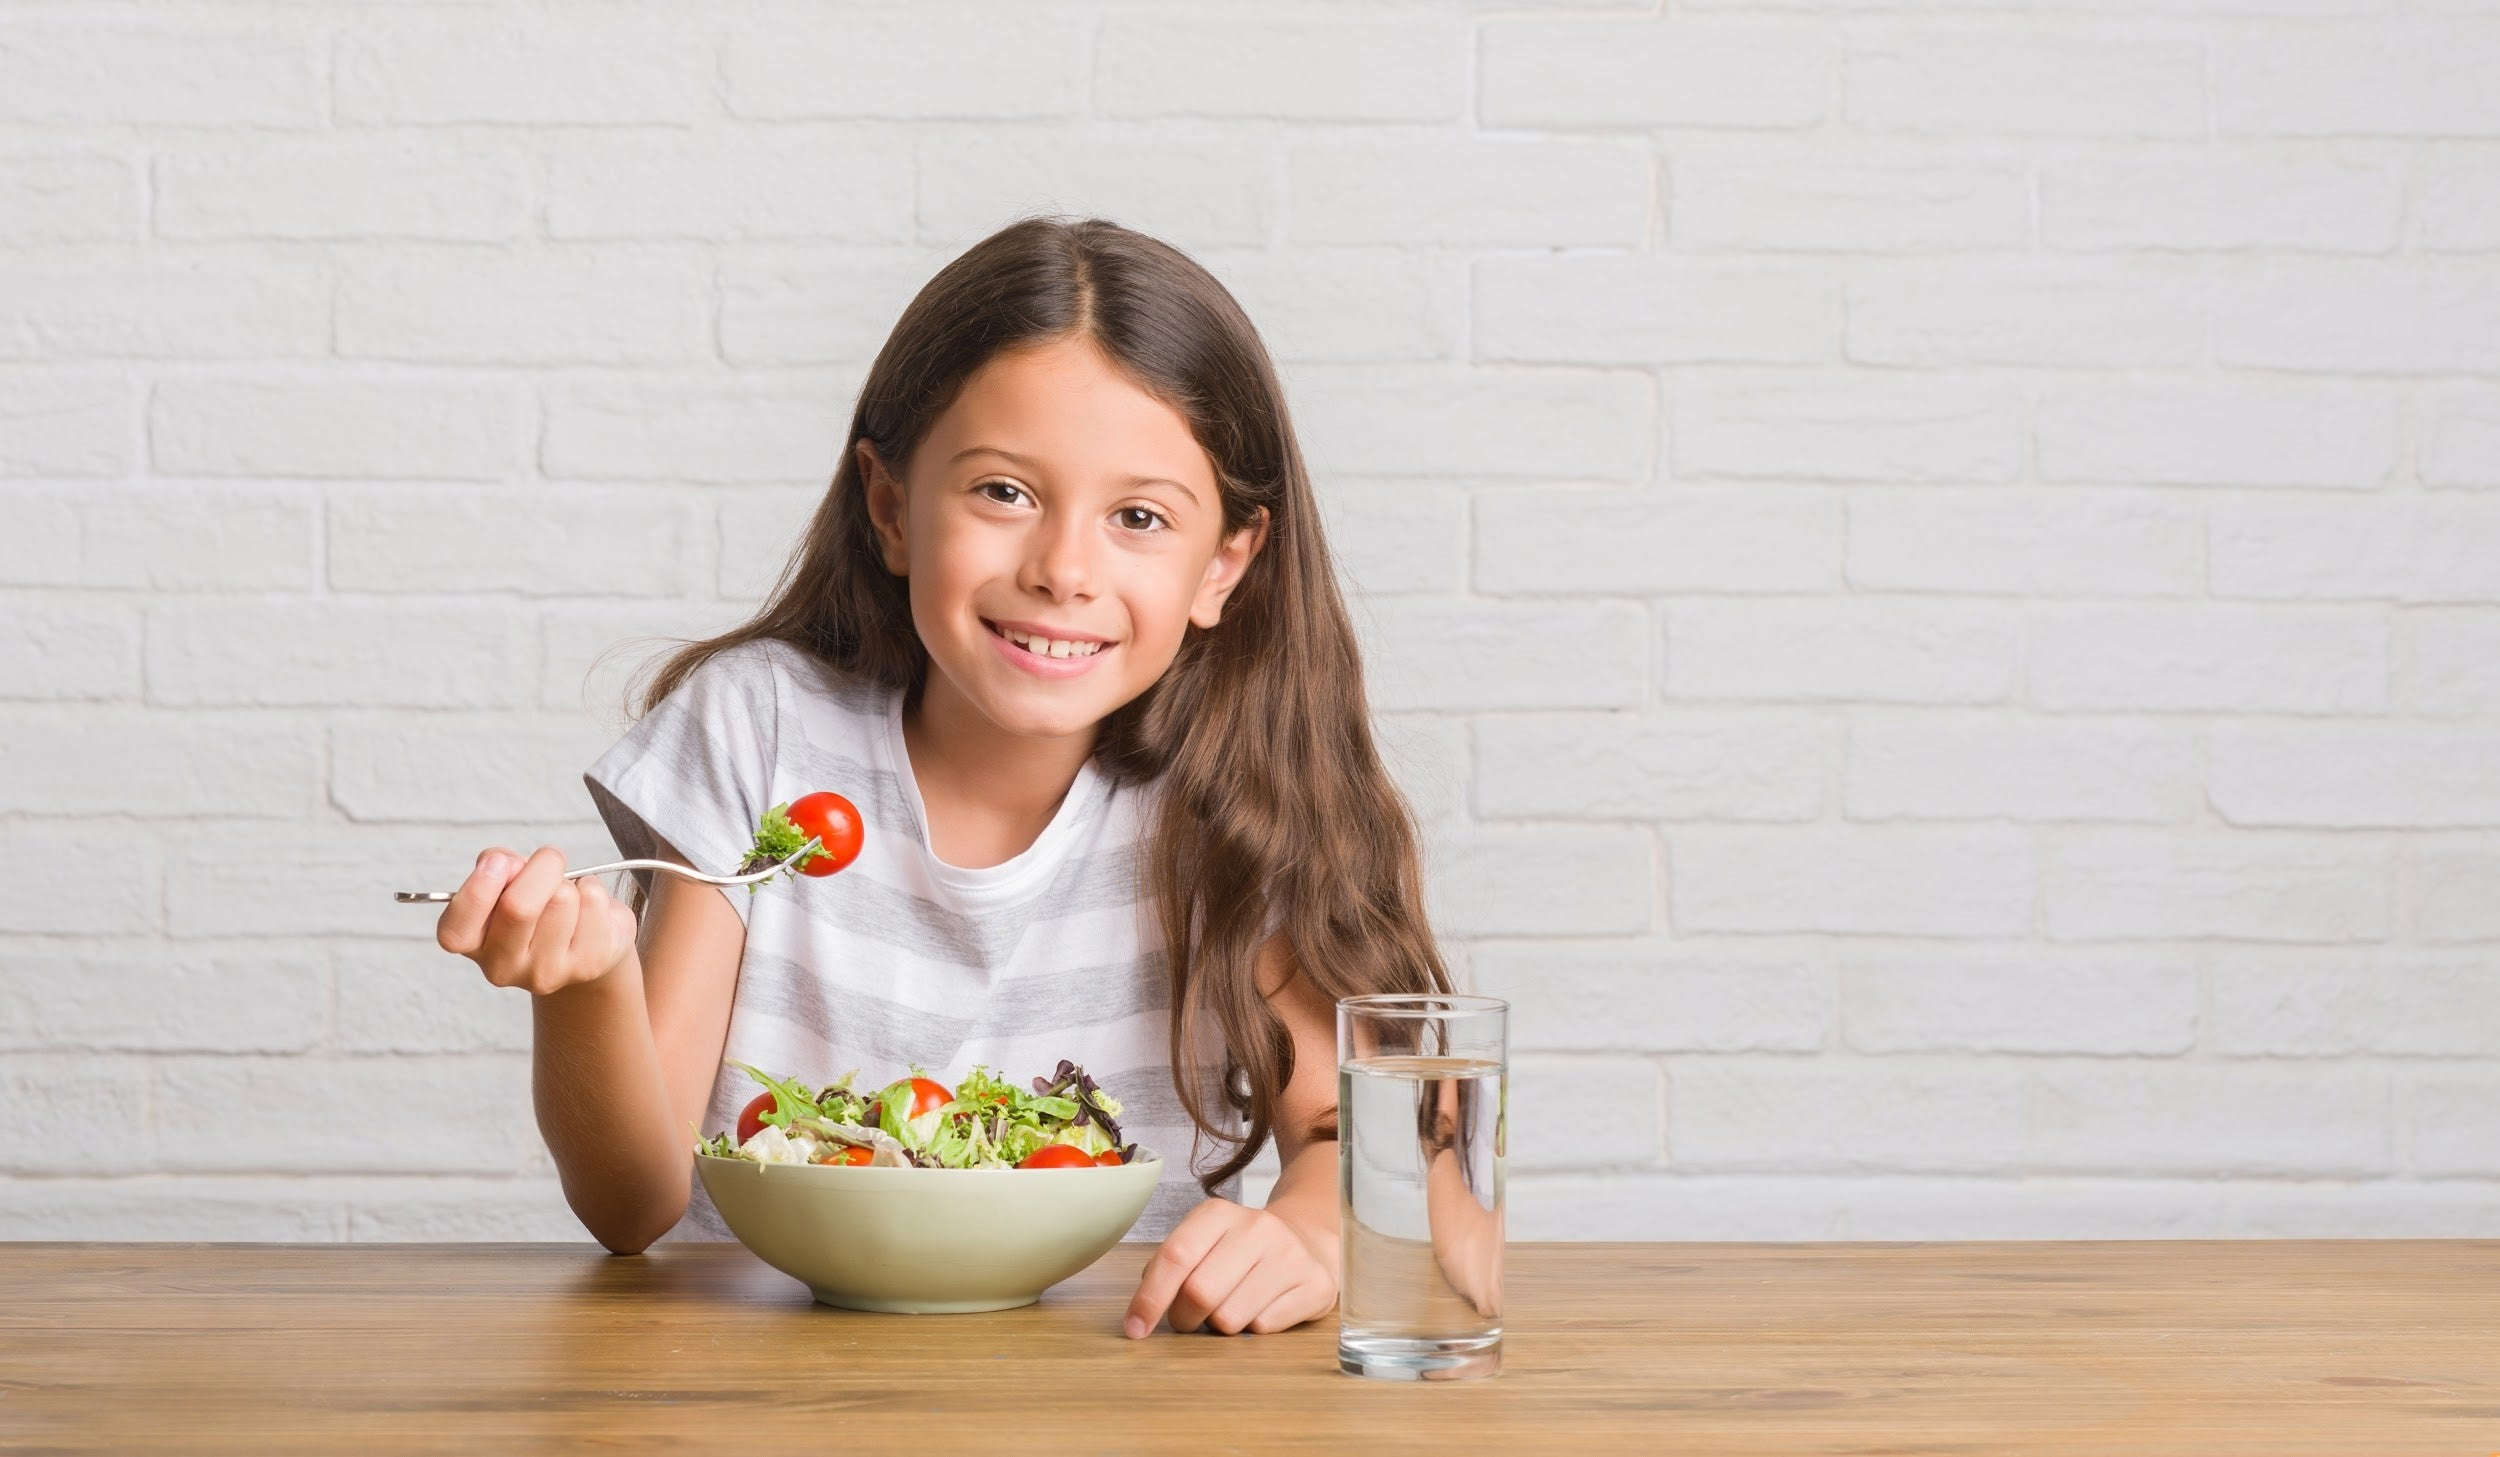 new years resolution ideas for kids - eating healthier